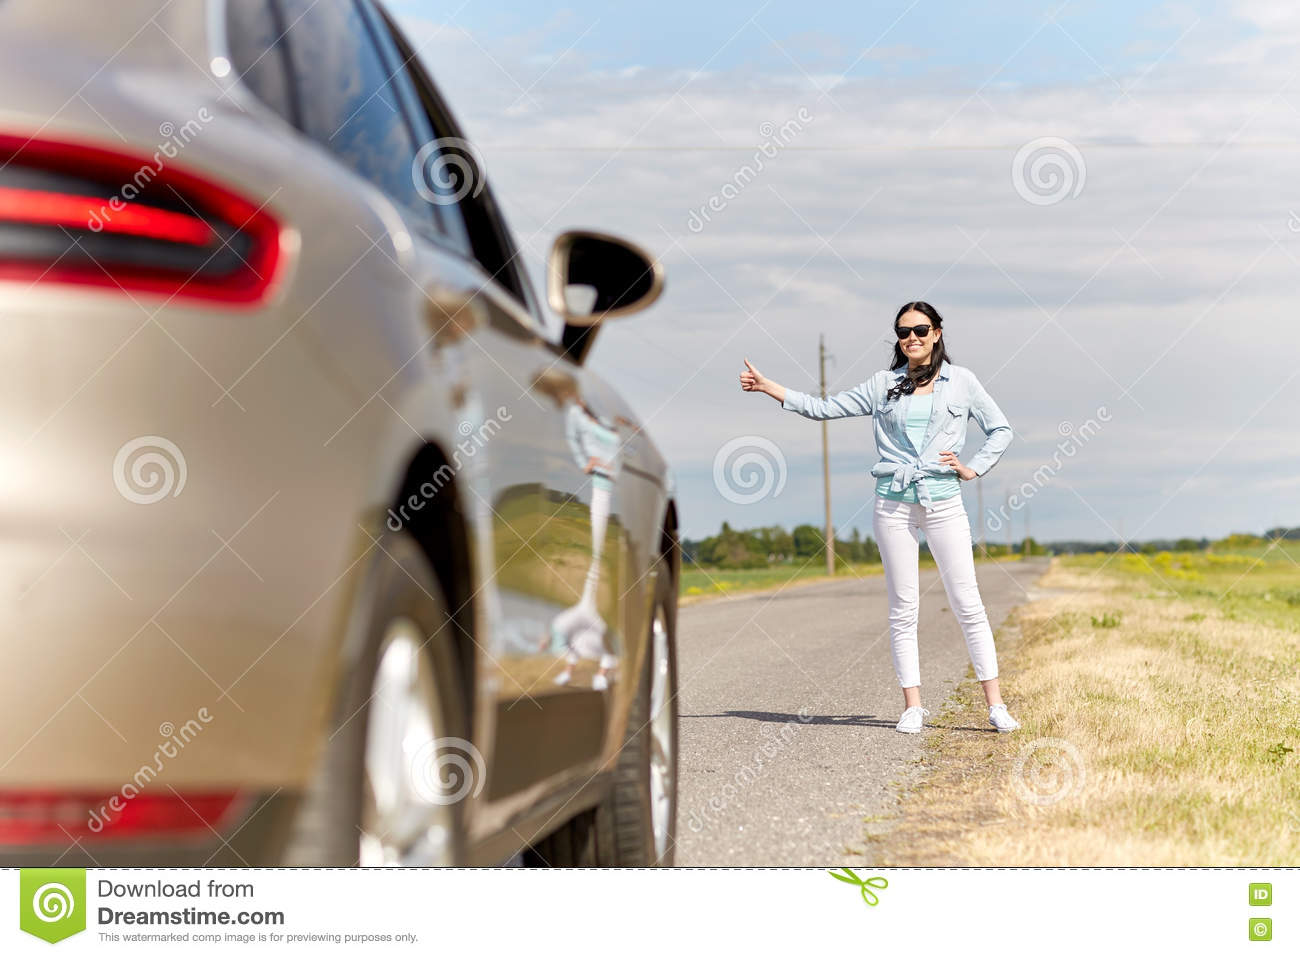 Woman hitchhiking and stopping car at countryside